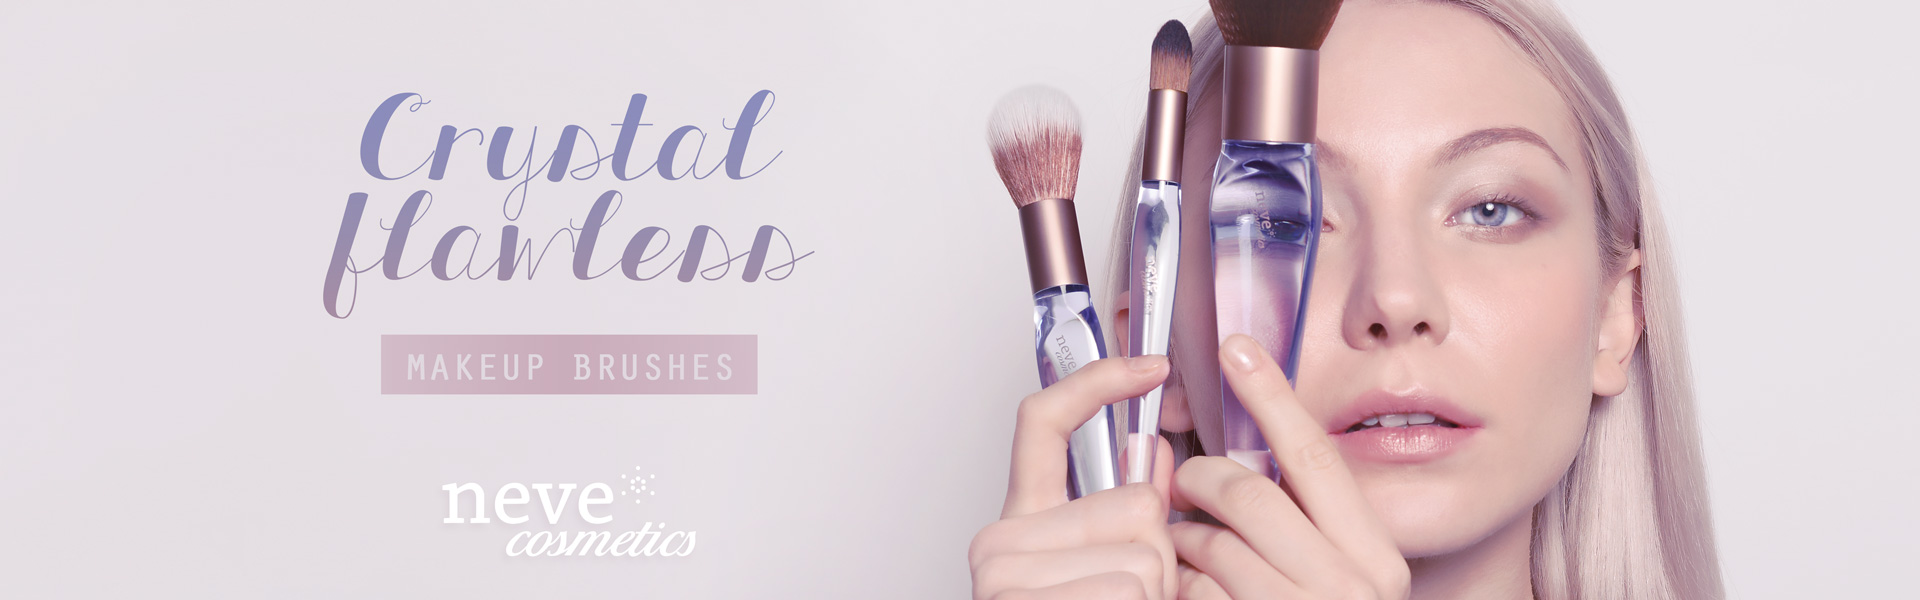 Crystal Flawless cruelty free makeup brushes